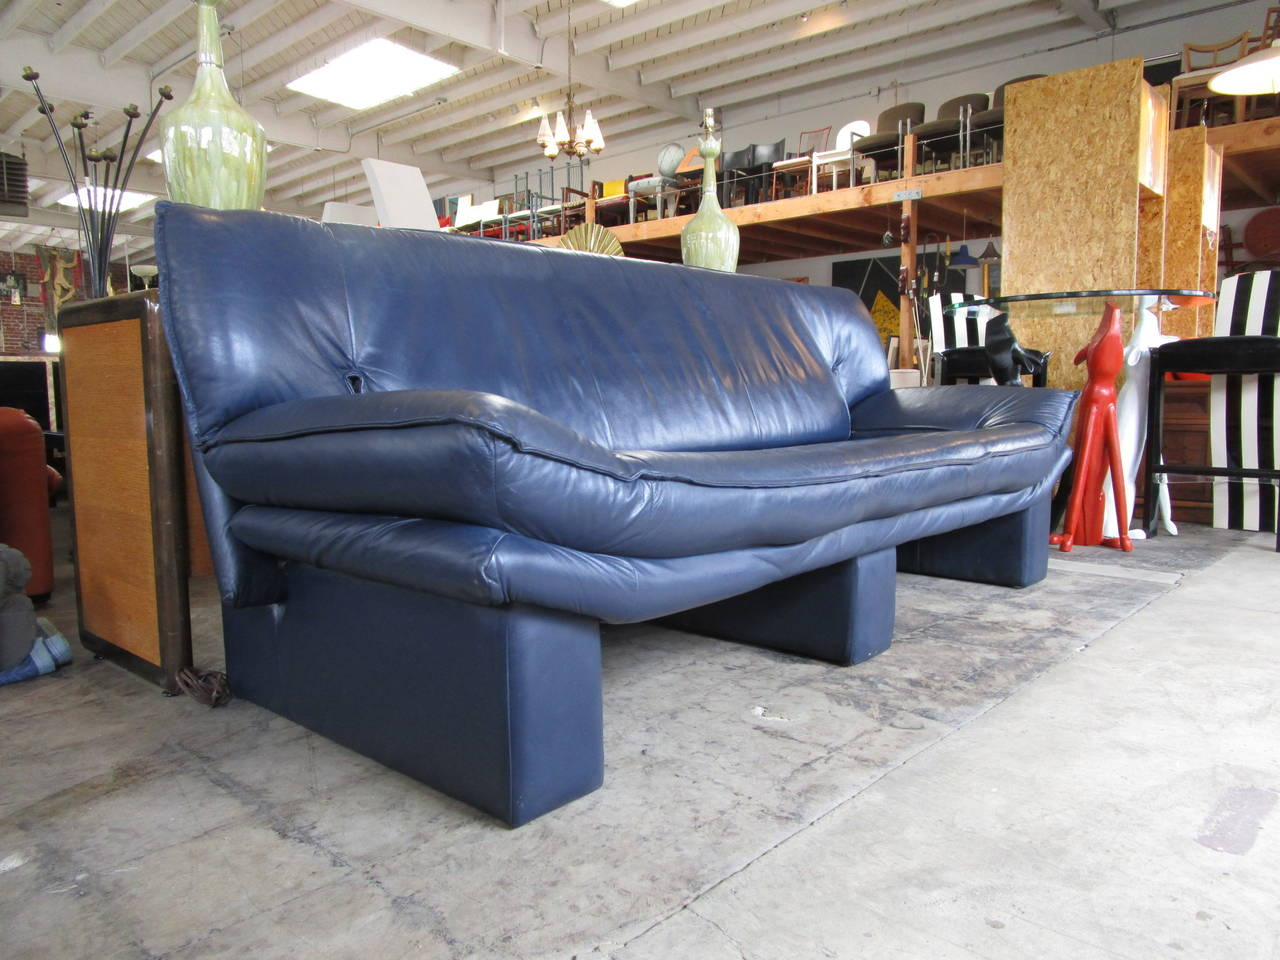 Blue Leather Sofa On Three Supports Entirely Clad In Strong Lines And Very